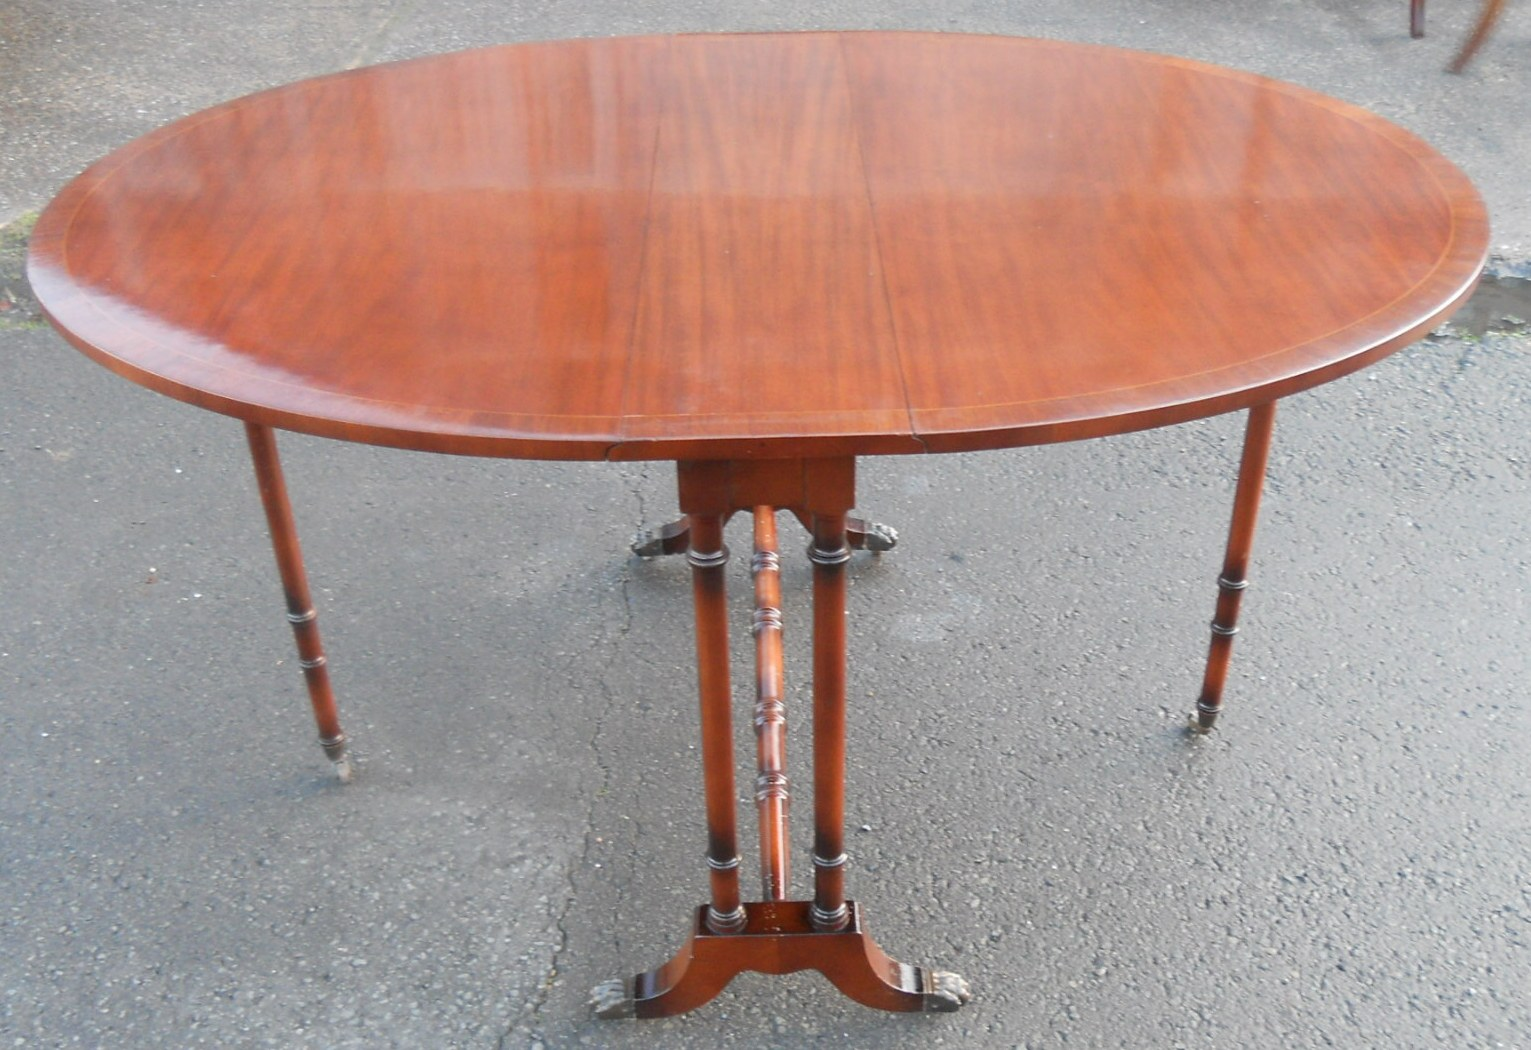 Oval Mahogany Dropleaf Dining Table to Seat Six SOLD : oval mahogany dropleaf dining table to seat six sold 4 3605 p from www.harrisonantiquefurniture.co.uk size 1531 x 1050 jpeg 347kB